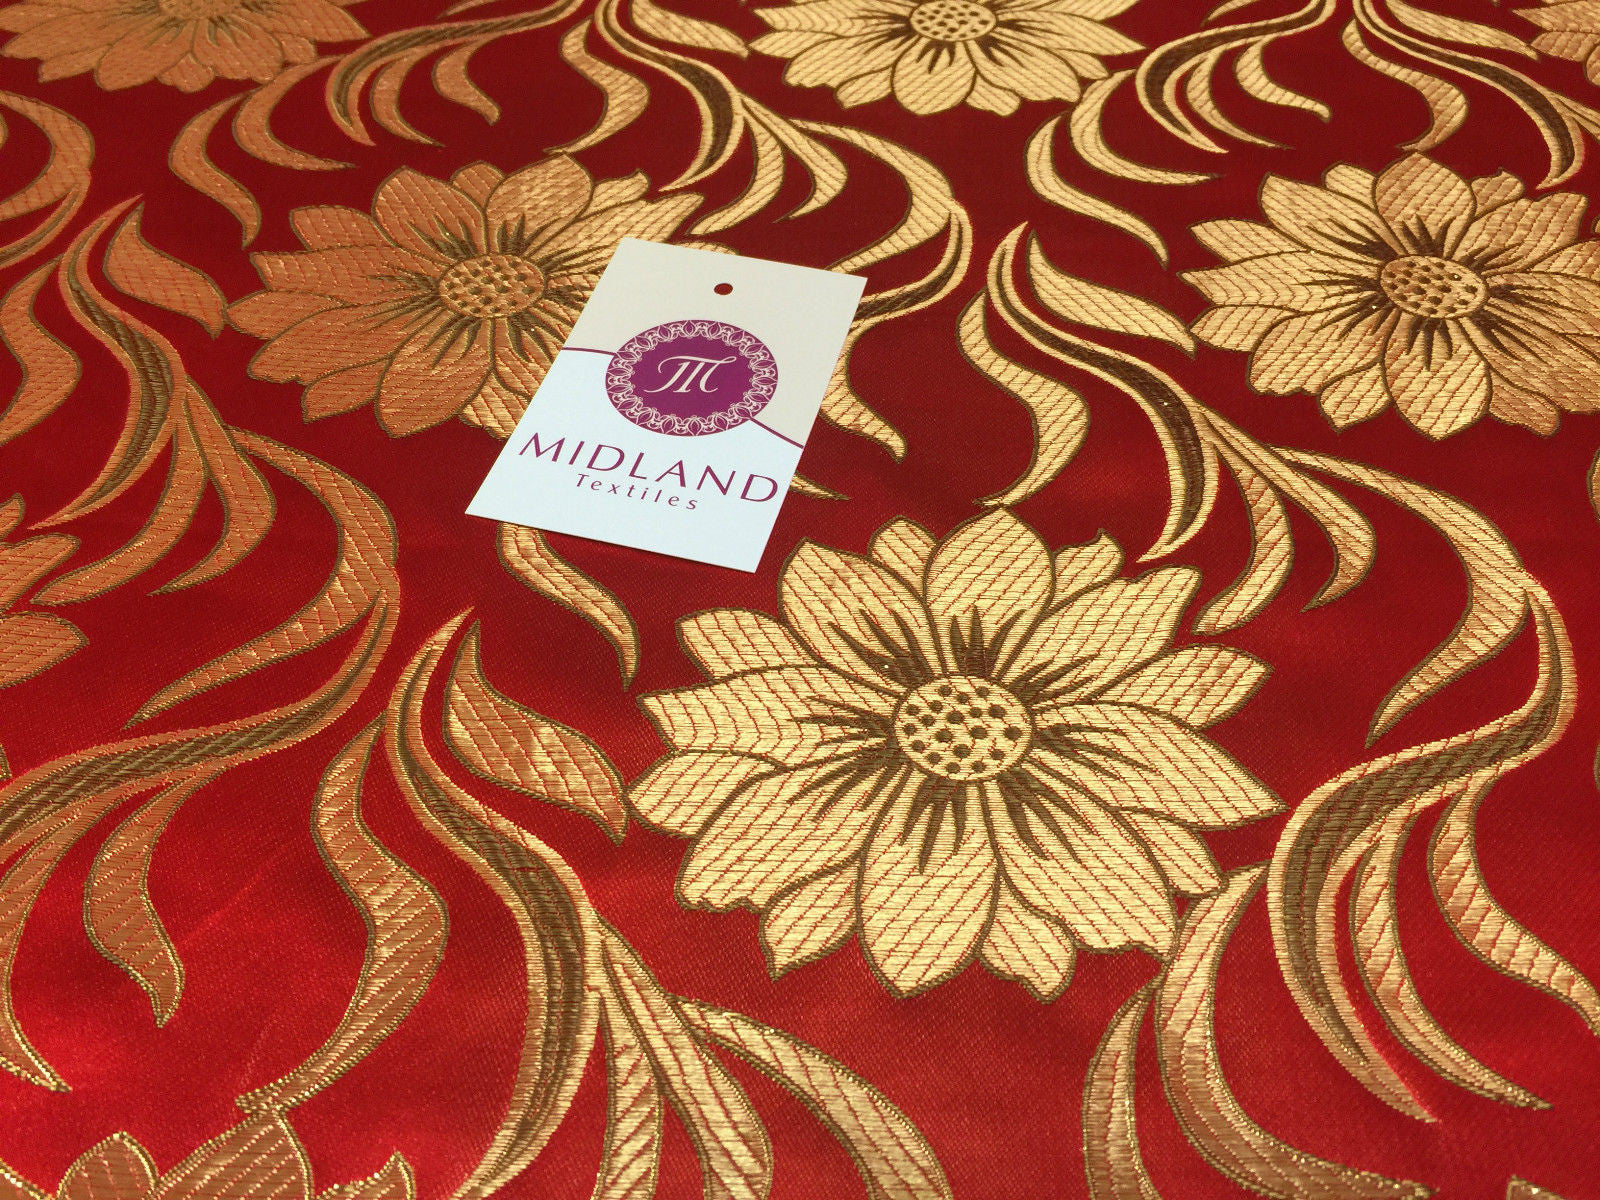 "Red and gold floral Metallic jacquard brocade Fabric 58"" Wide M380 Mtex - Midland Textiles & Fabric"